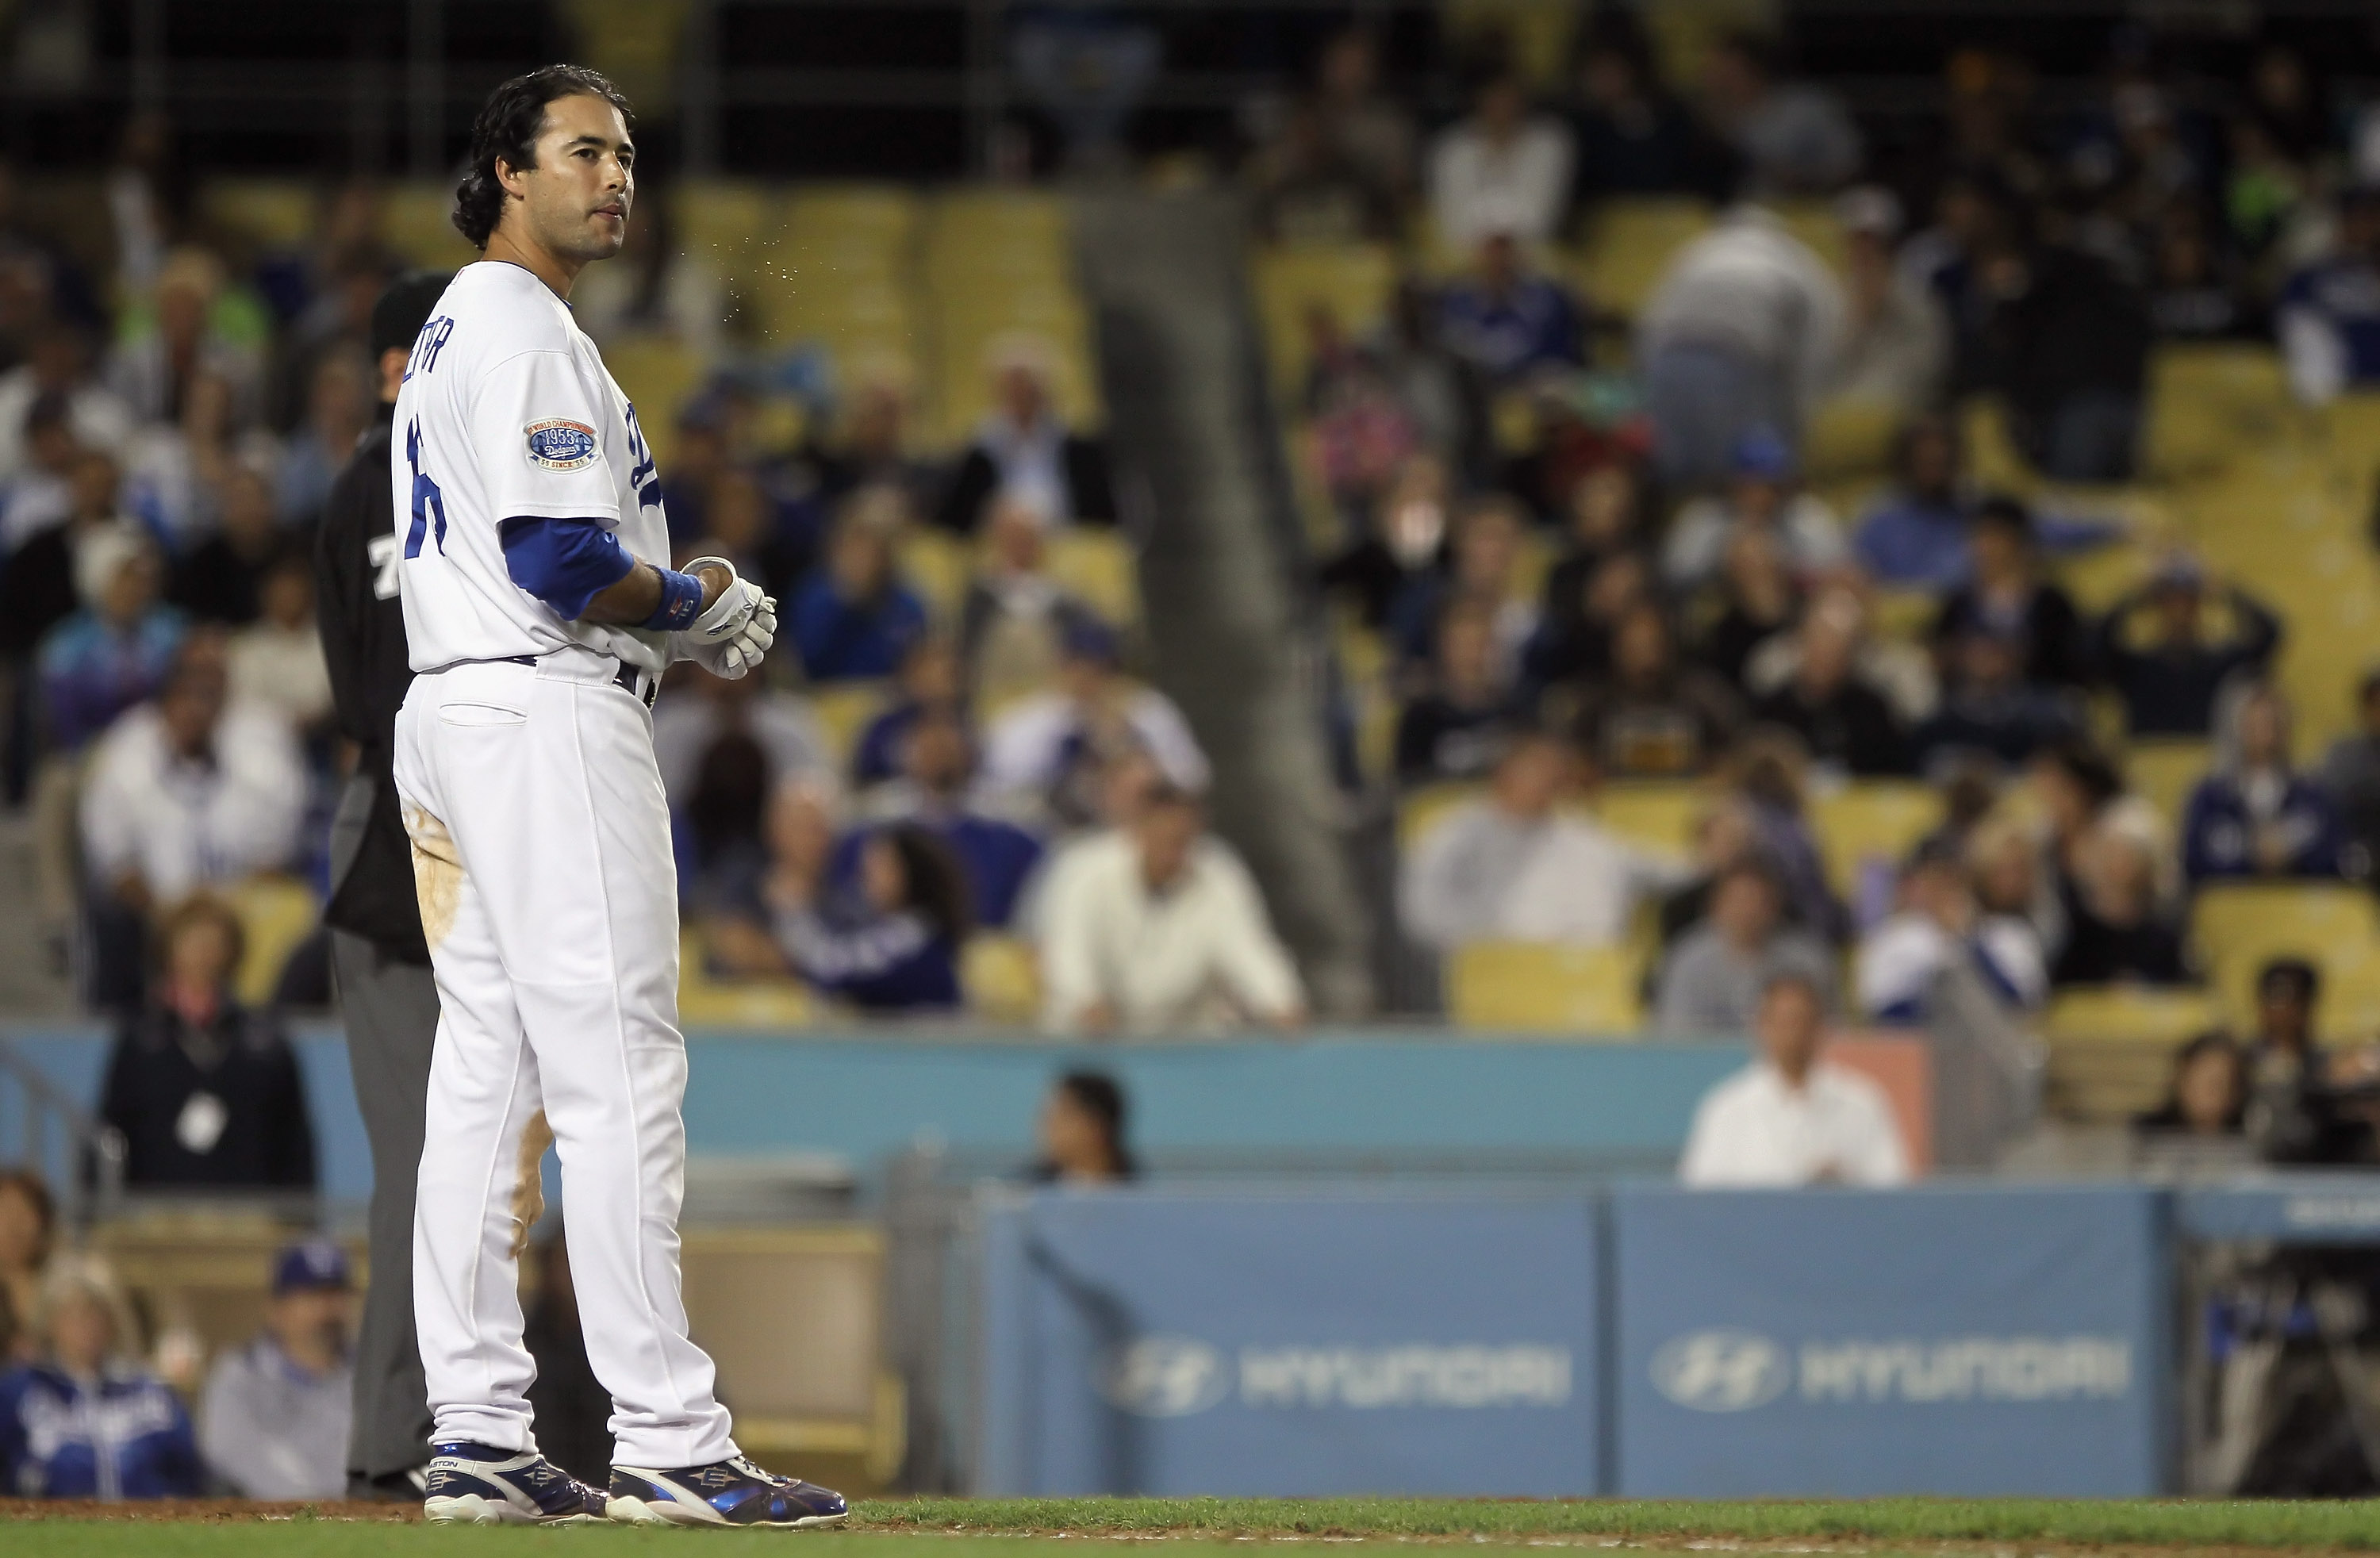 LOS ANGELES, CA - SEPTEMBER 22:  Andre Ethier #16 of the Los Angeles Dodgers looks on after grounding out to first against the San Diego Padres in the eighth inning at Dodger Stadium on September 22, 2010 in Los Angeles, California. The Padres defeated th